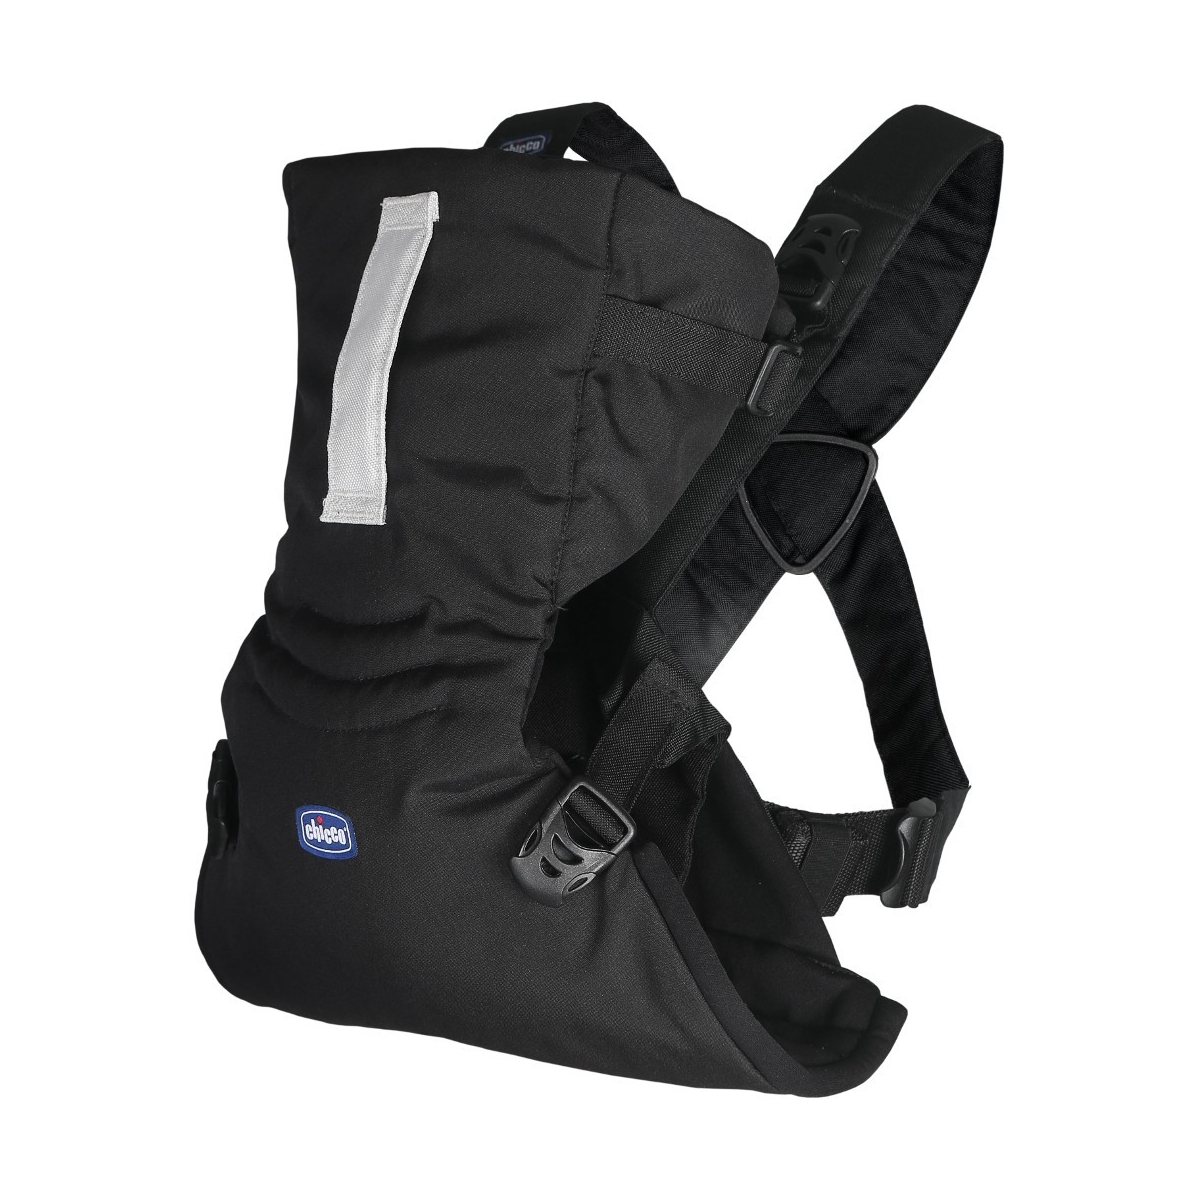 Chicco Easyfit Baby Carrier-Black Night (NEW)